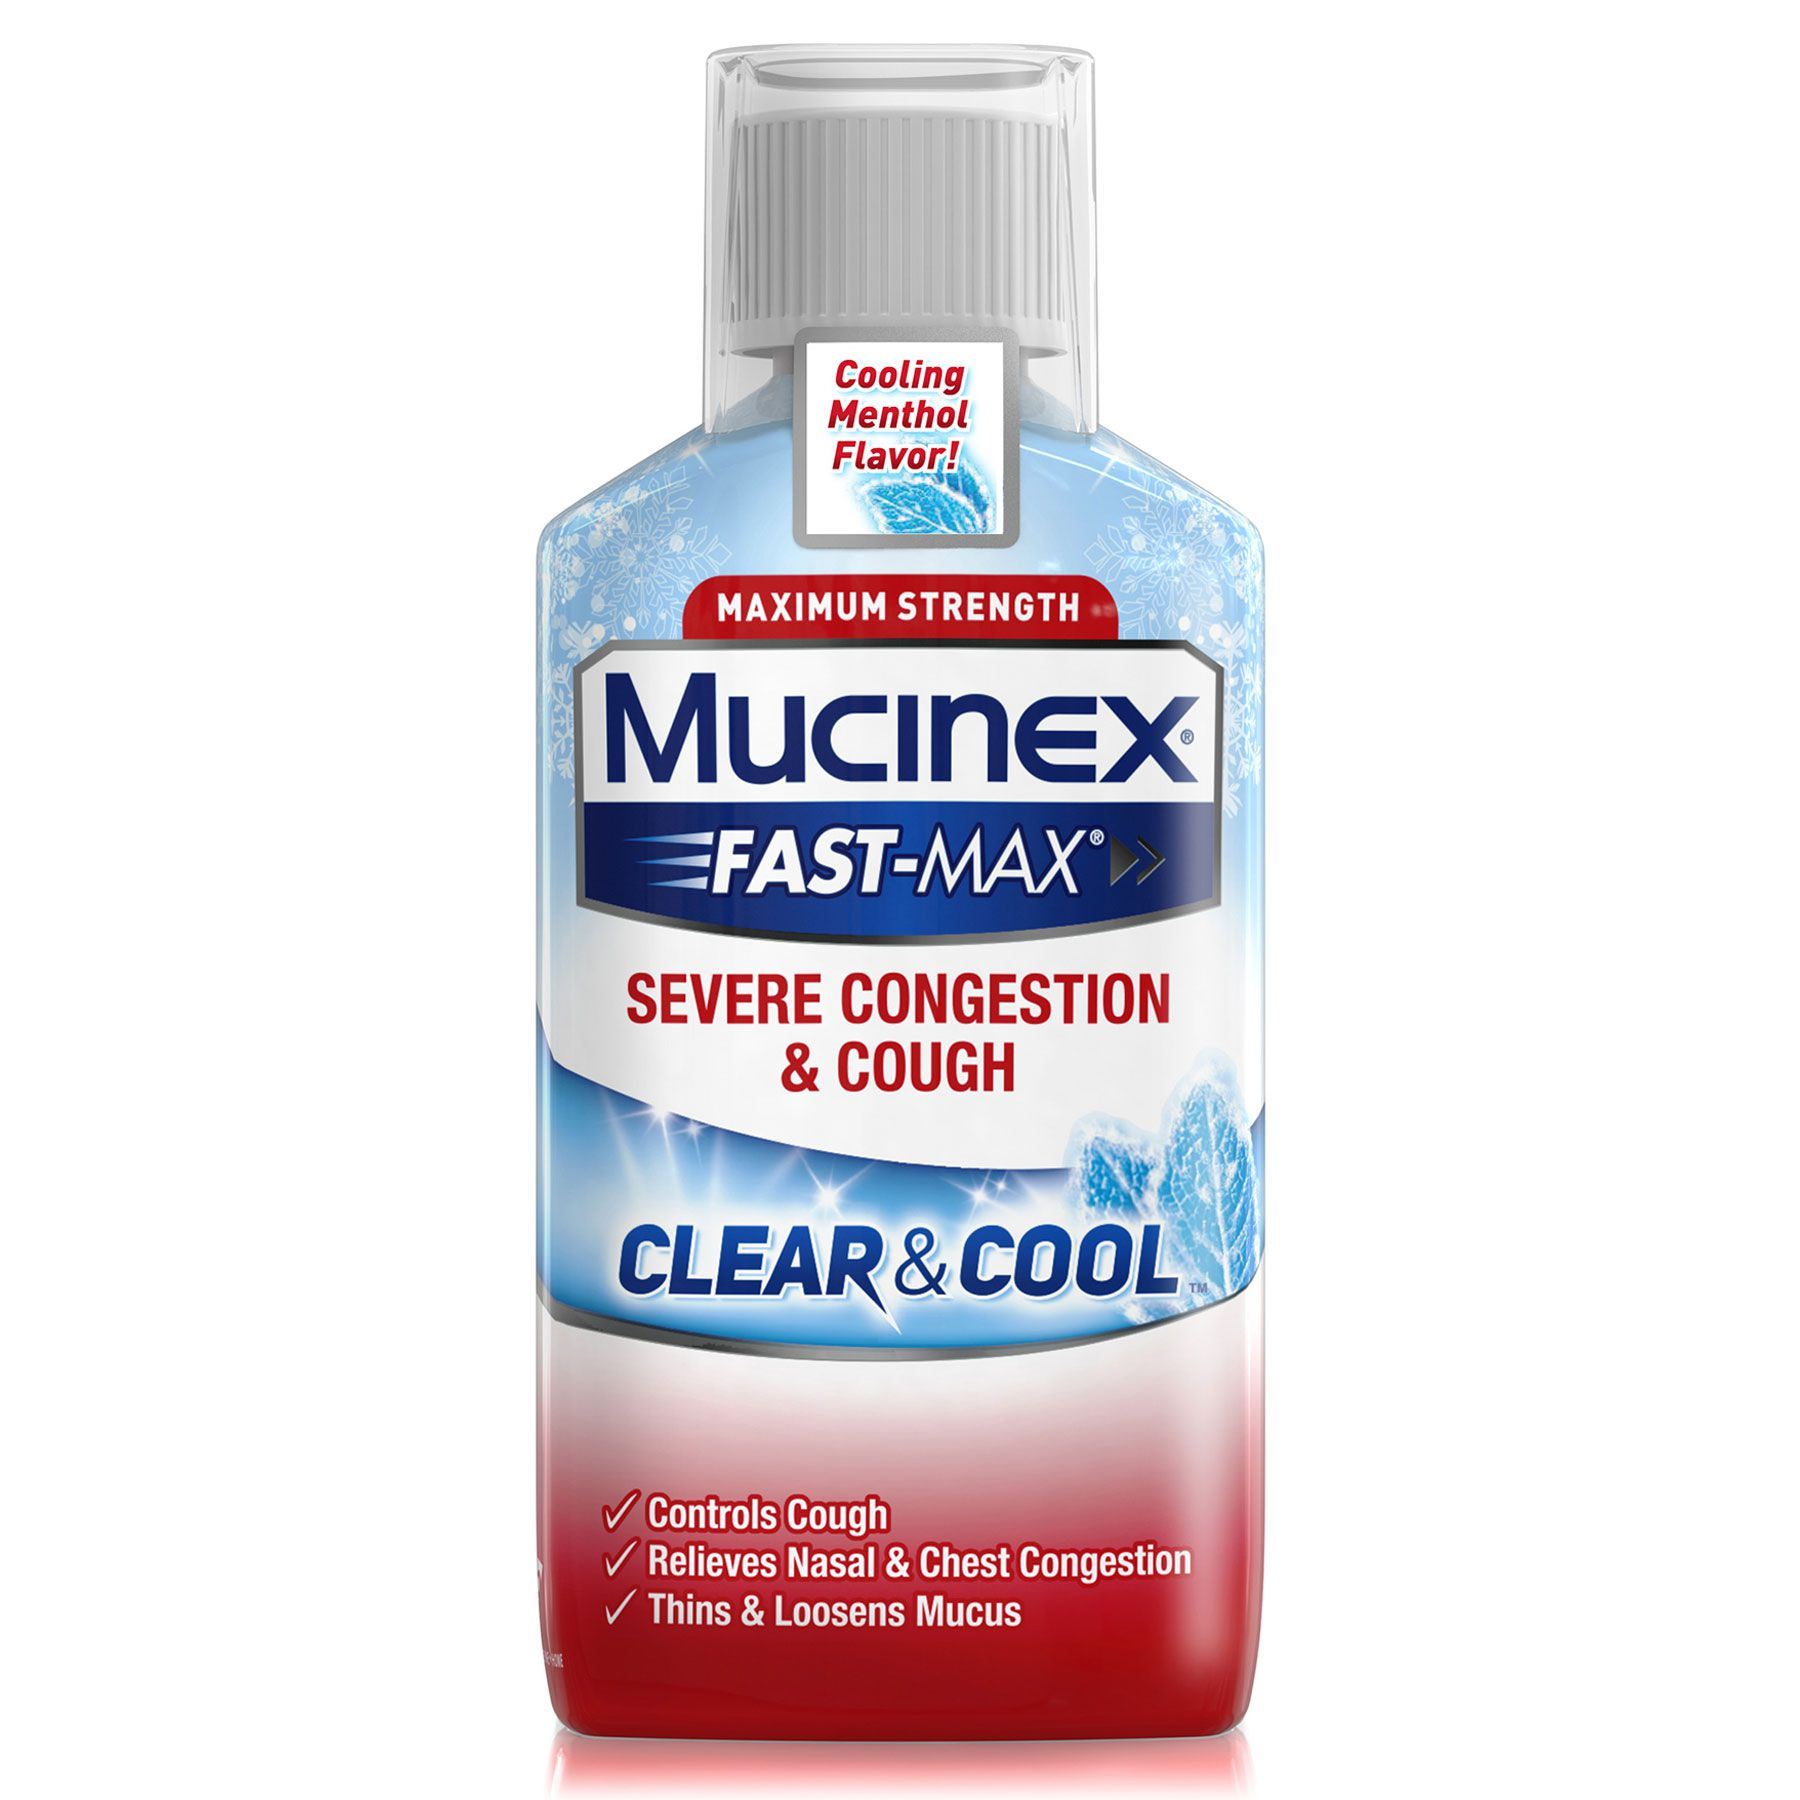 Forum on this topic: Mucinex Fast-Max Severe Cold And Sinus, mucinex-fast-max-severe-cold-and-sinus/